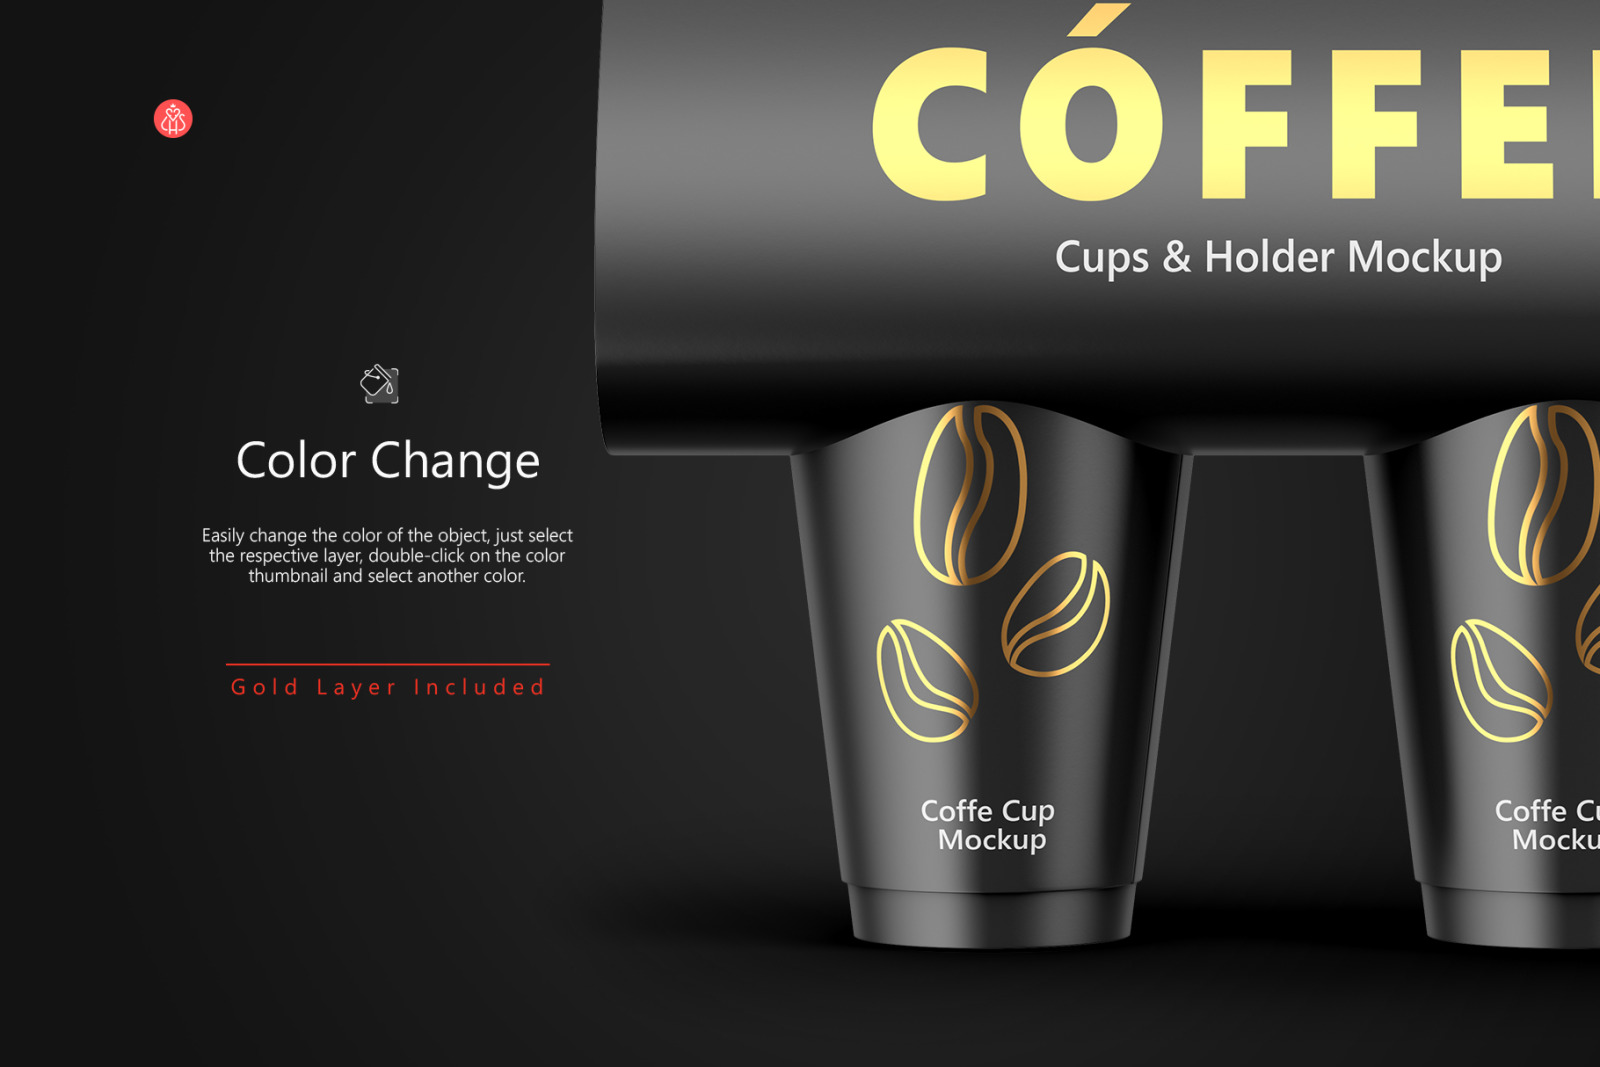 Coffee Cups and Holder Mockups - Front View